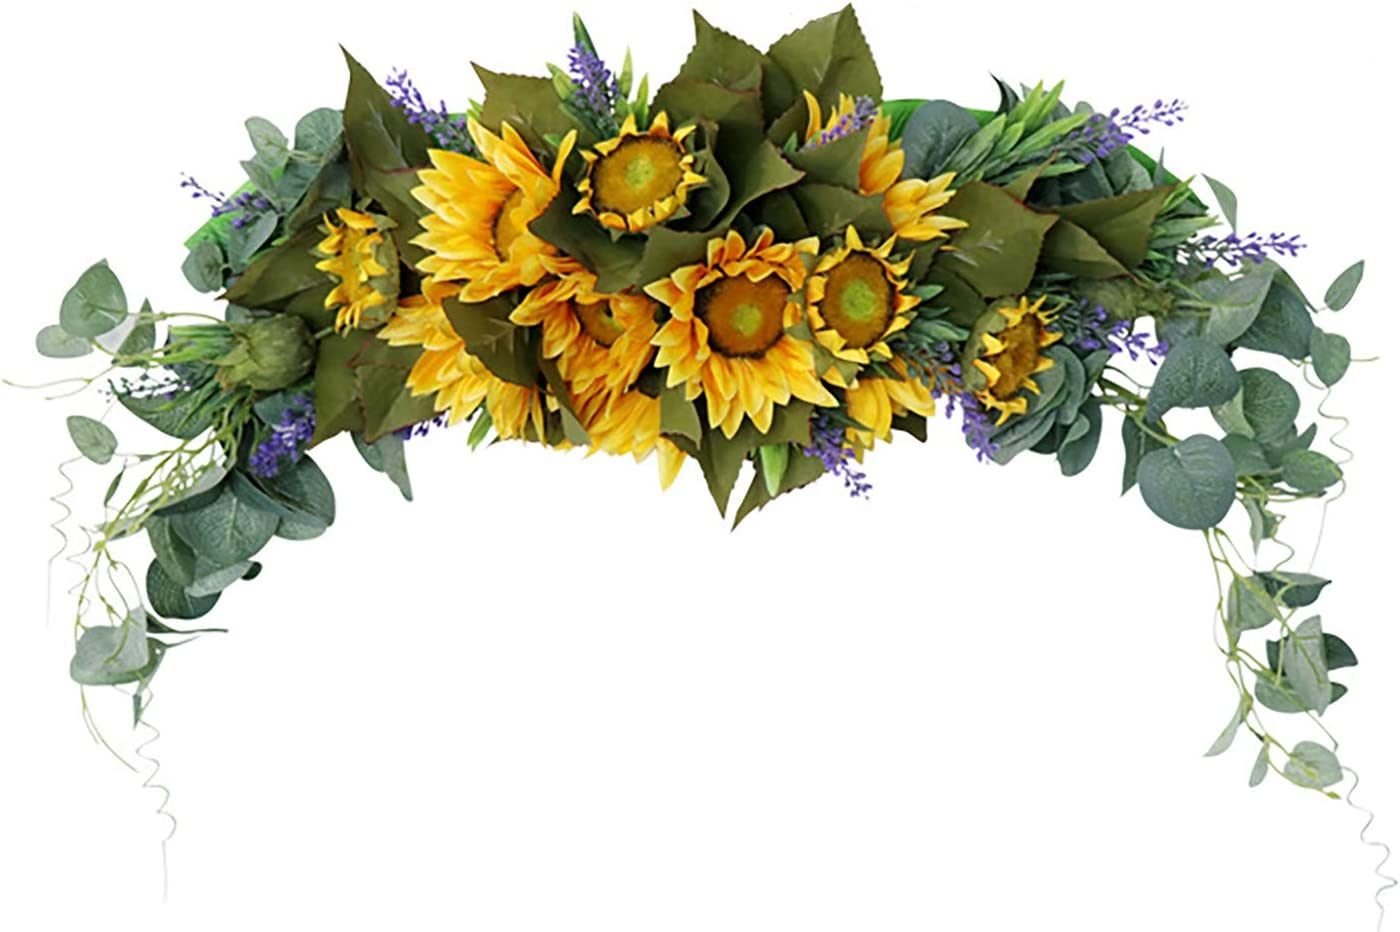 GREENWISH 30 Inch Artificial Sunflower Swag with Eucalyptus Leaves & Lavender, Decorative Sunflower Wreath Handmade Floral Swag for Wedding Arch Front Door Wall Decor